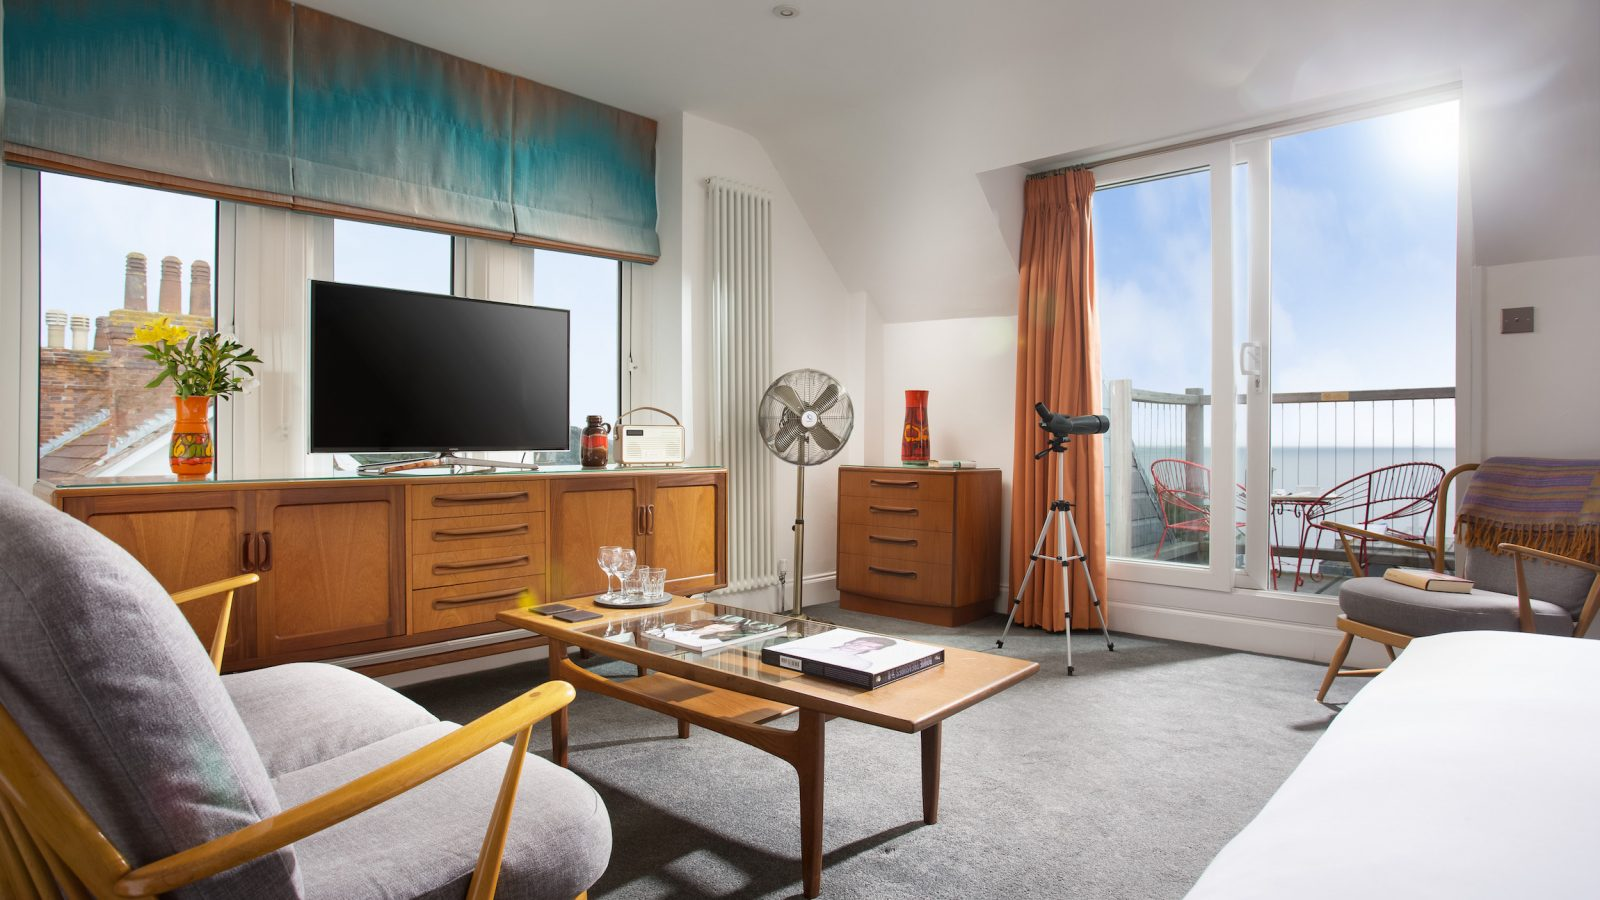 Executive king room with triple aspect views and private balcony